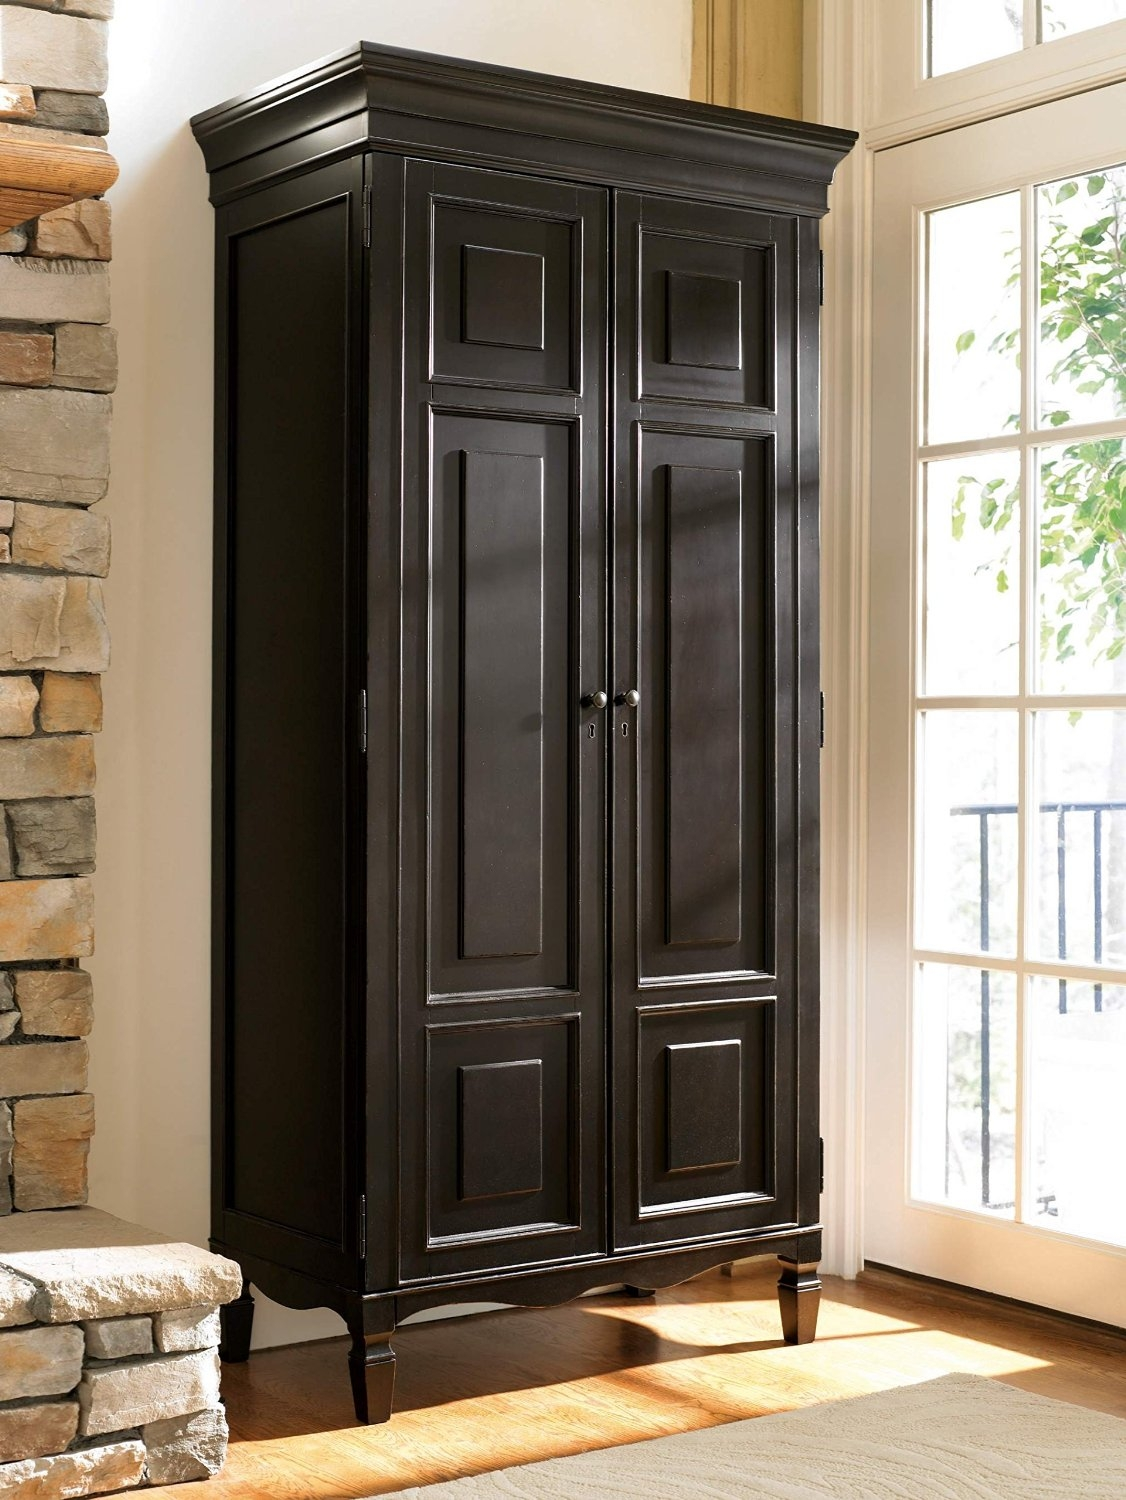 Permalink to Black Wooden Storage Cabinet With Doors